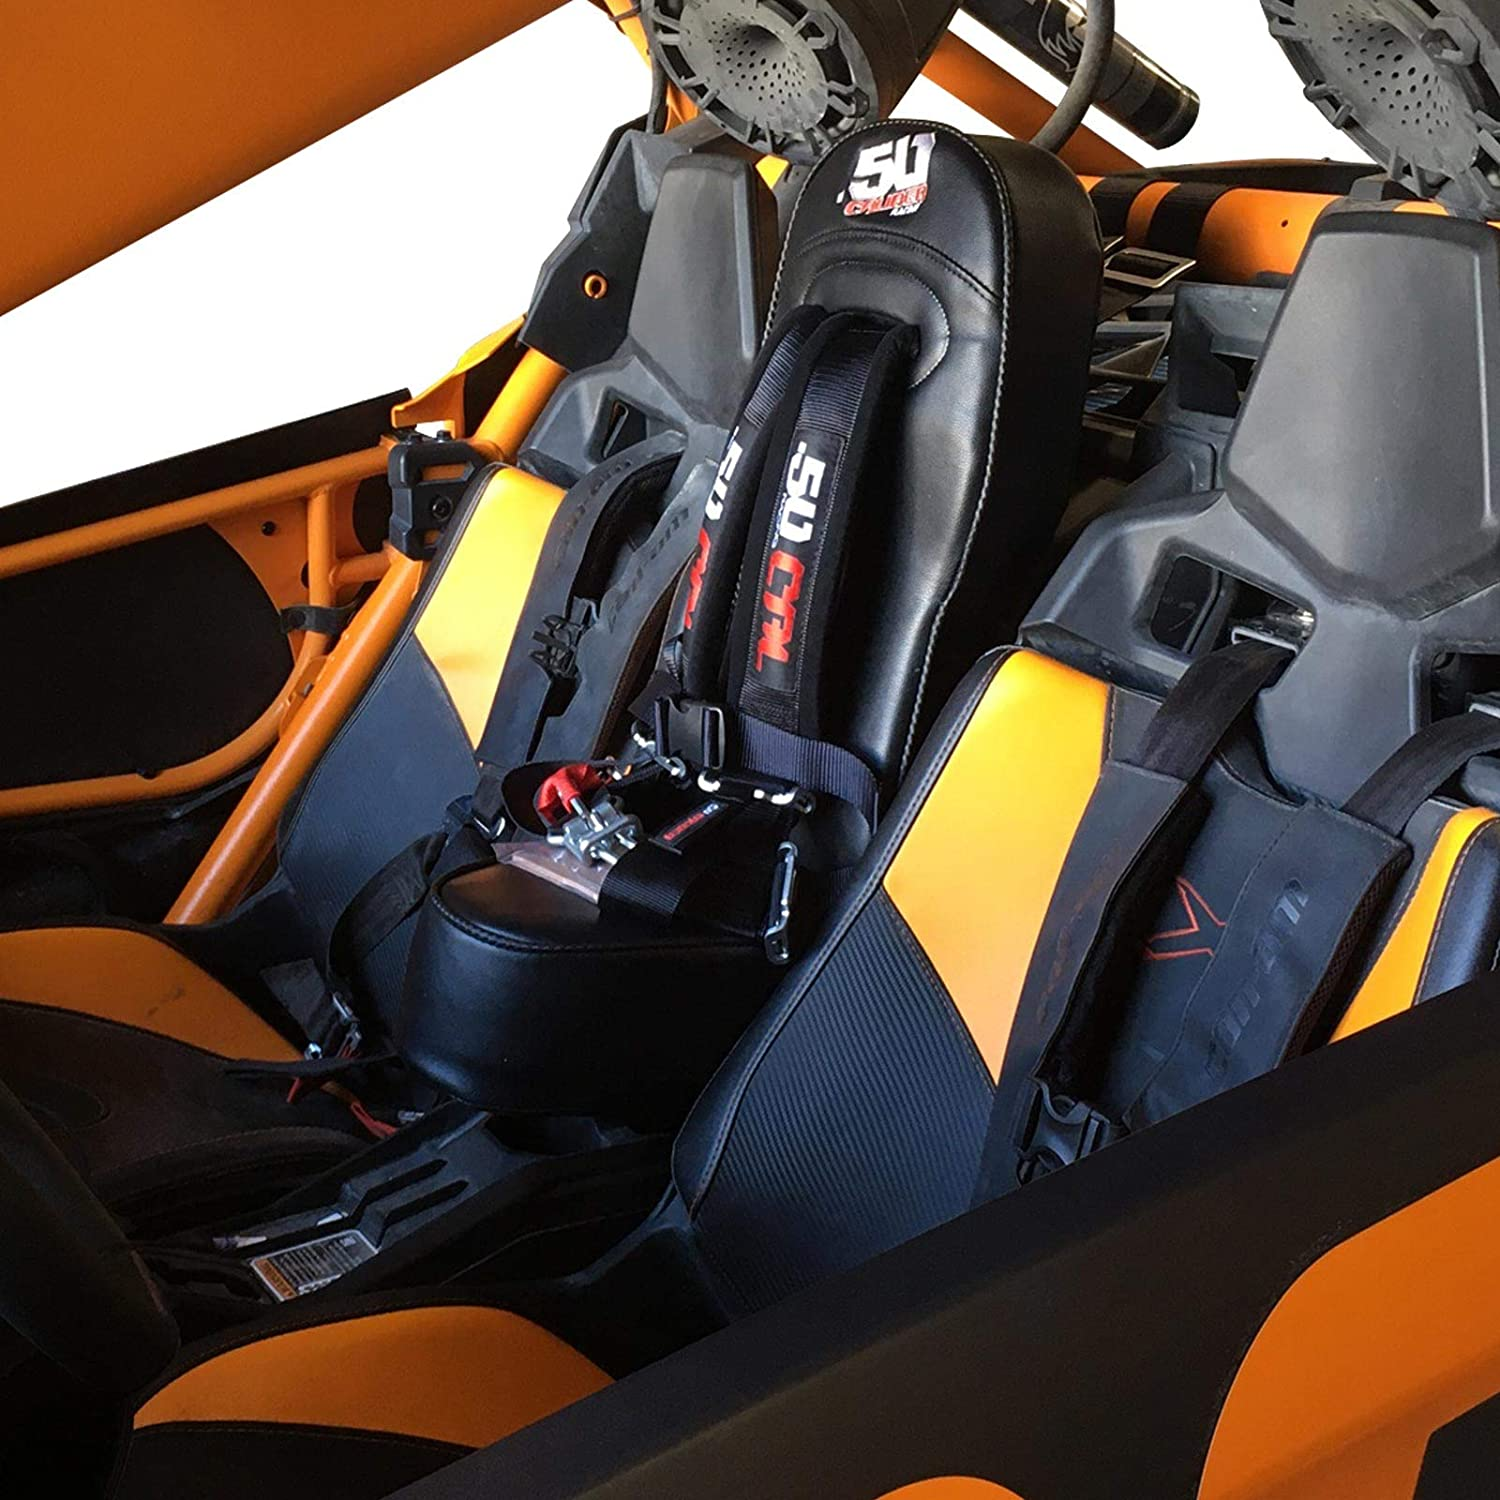 50 Caliber Racing Off Road Bump Seat with Black 2 4 Point Harness for Child Rider Fits Can-Am X3 2 /& 4 Seat Max Models 5048A13 CB 6008 Front or Rear Mount 2017-2020